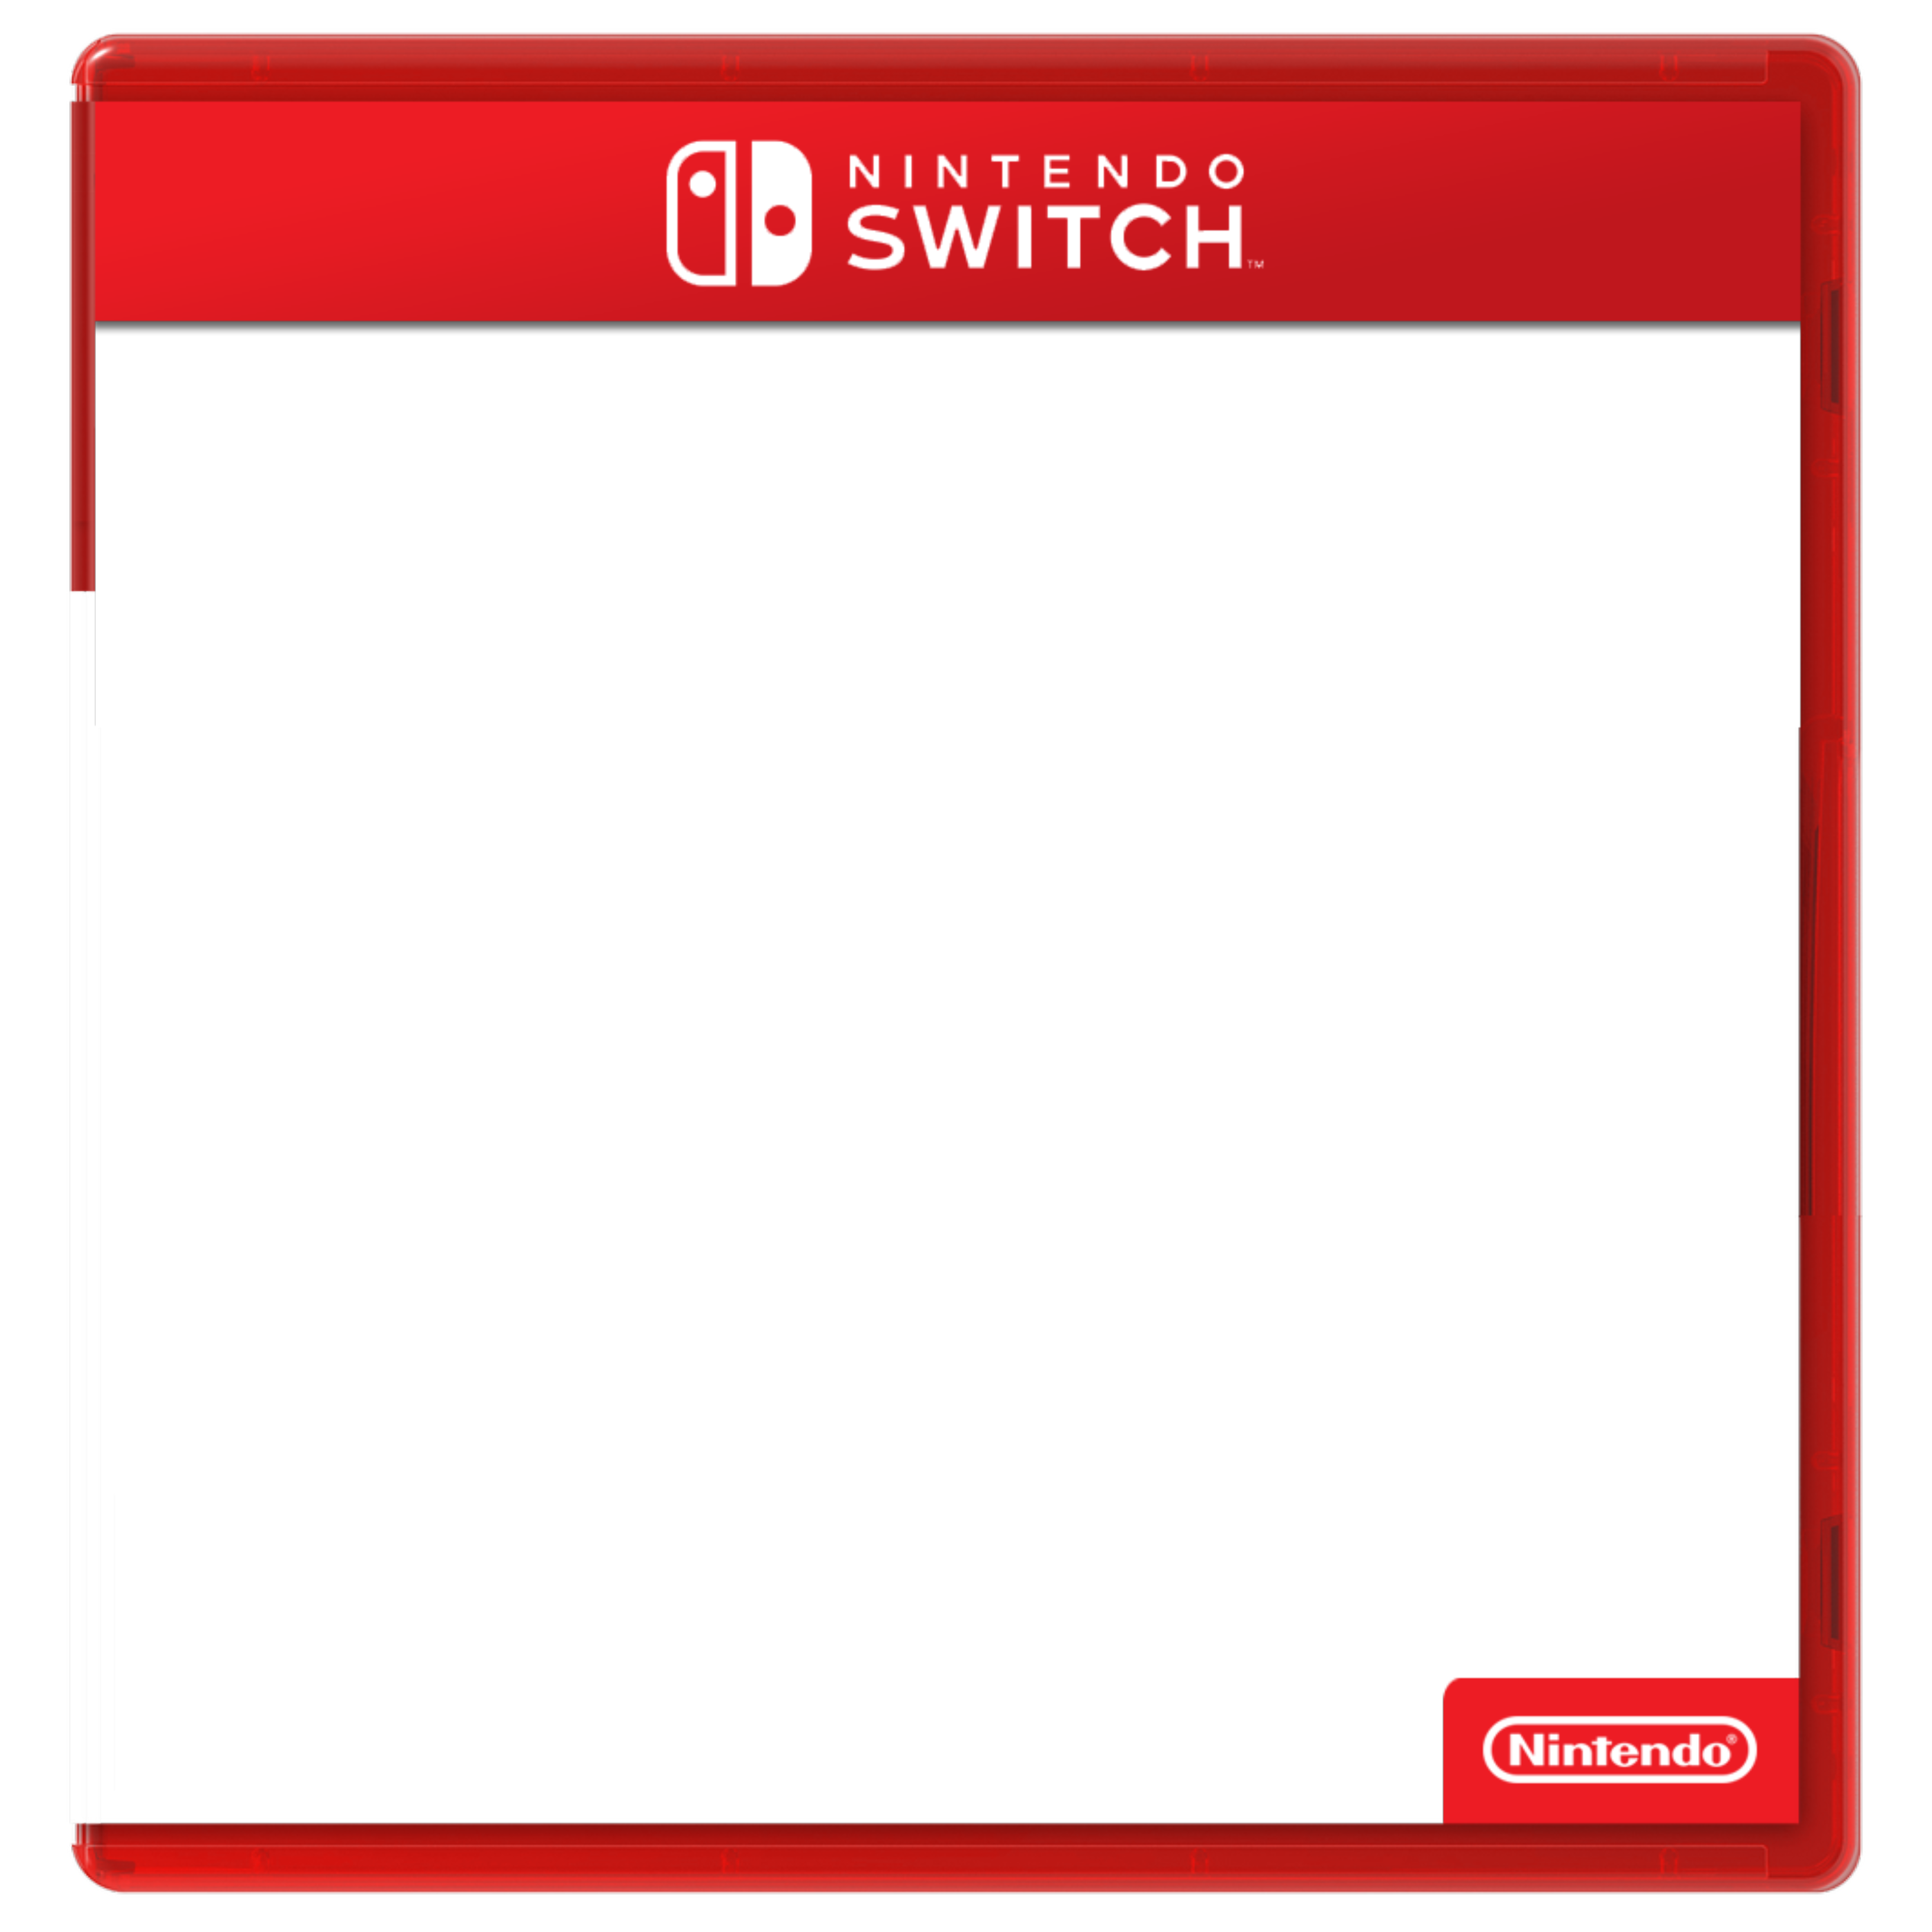 Nintendo switch box clipart png stock Nintendo switch template clipart images gallery for free download ... png stock